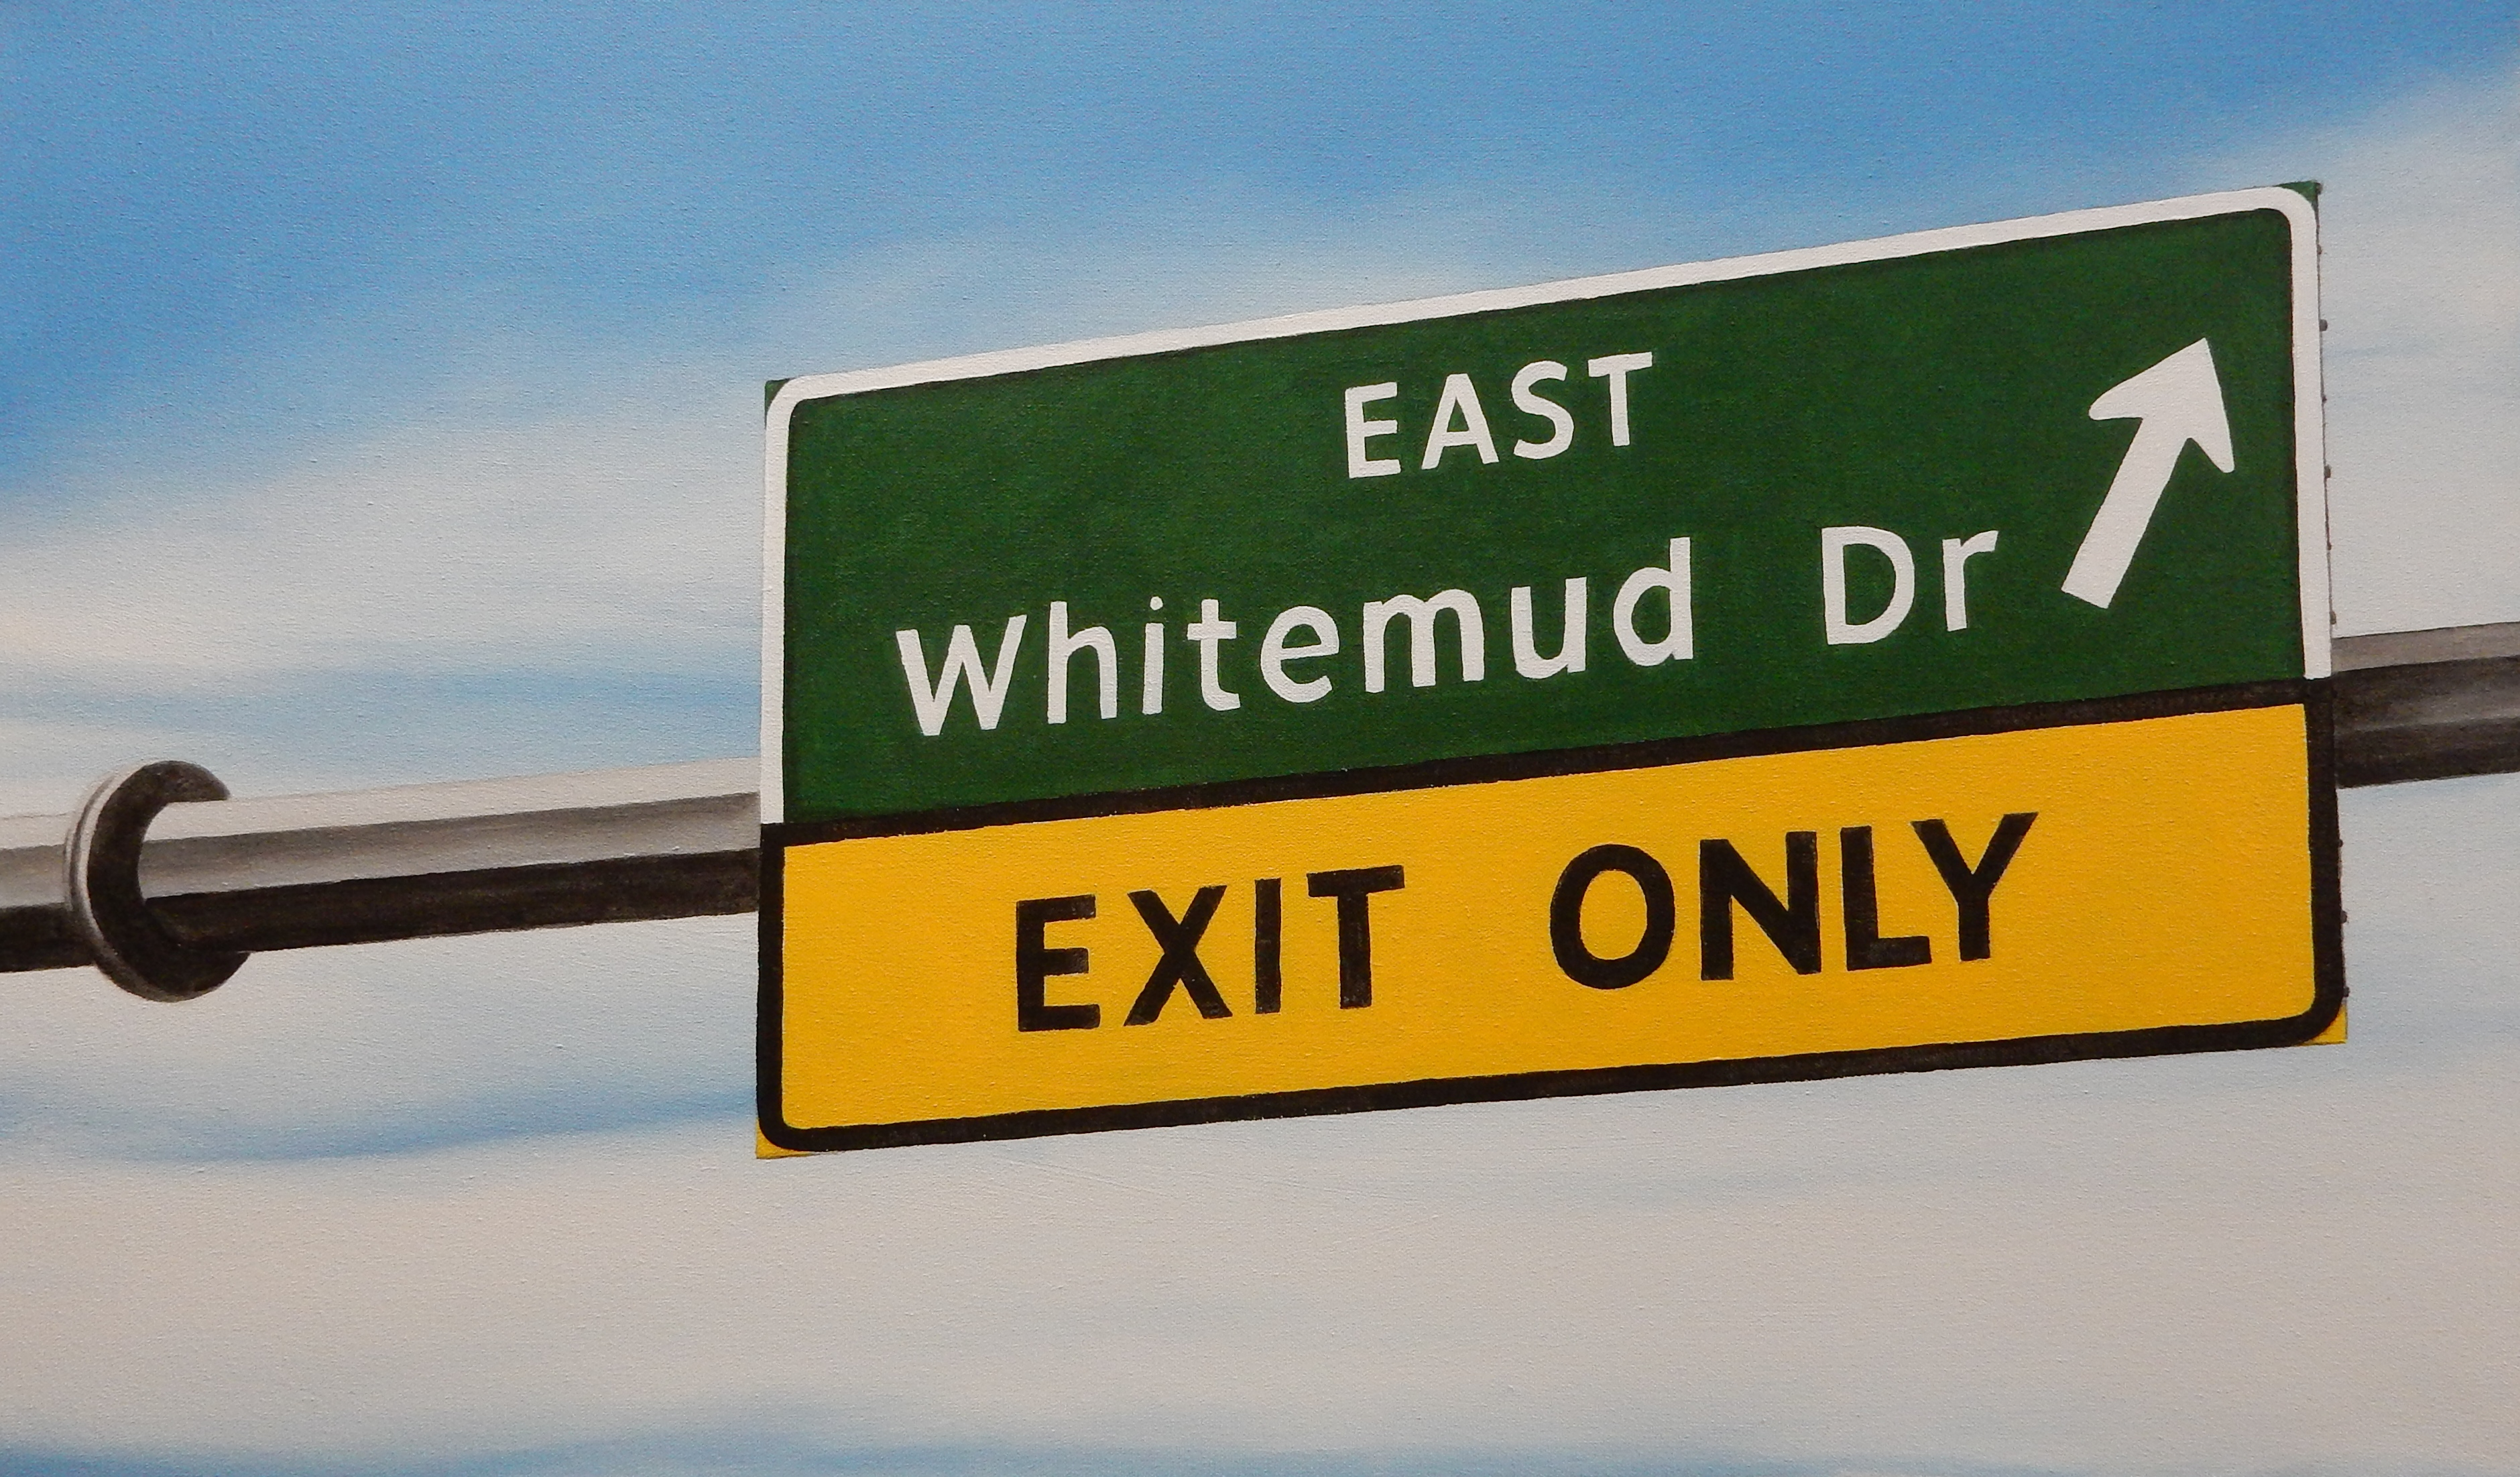 East Whitemud Dr.